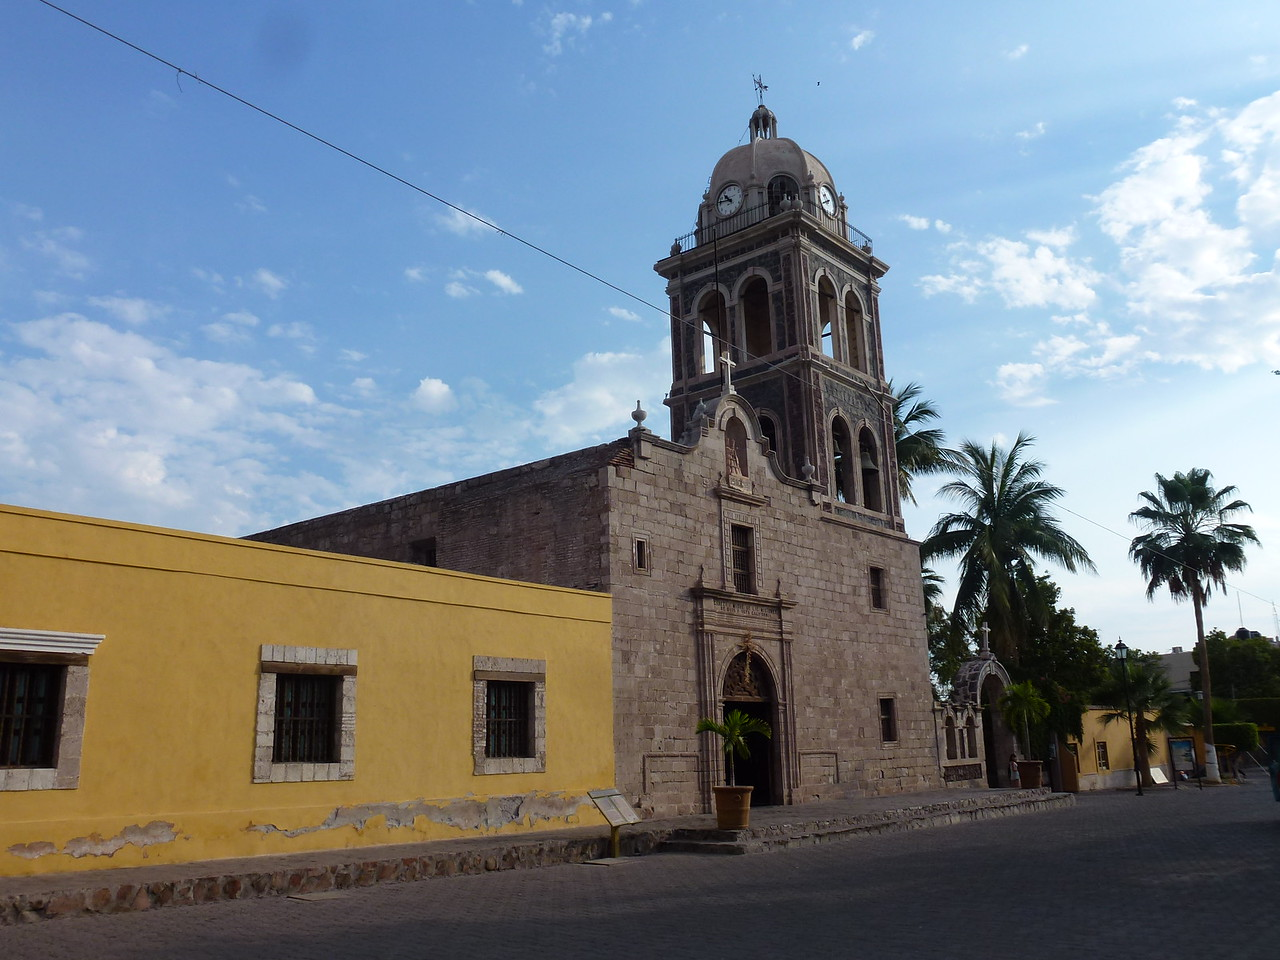 Mission Nuestra Señora de Loreto Concho <br /> <br /> Founded in 1697 <br /> <br /> Its beautiful inside